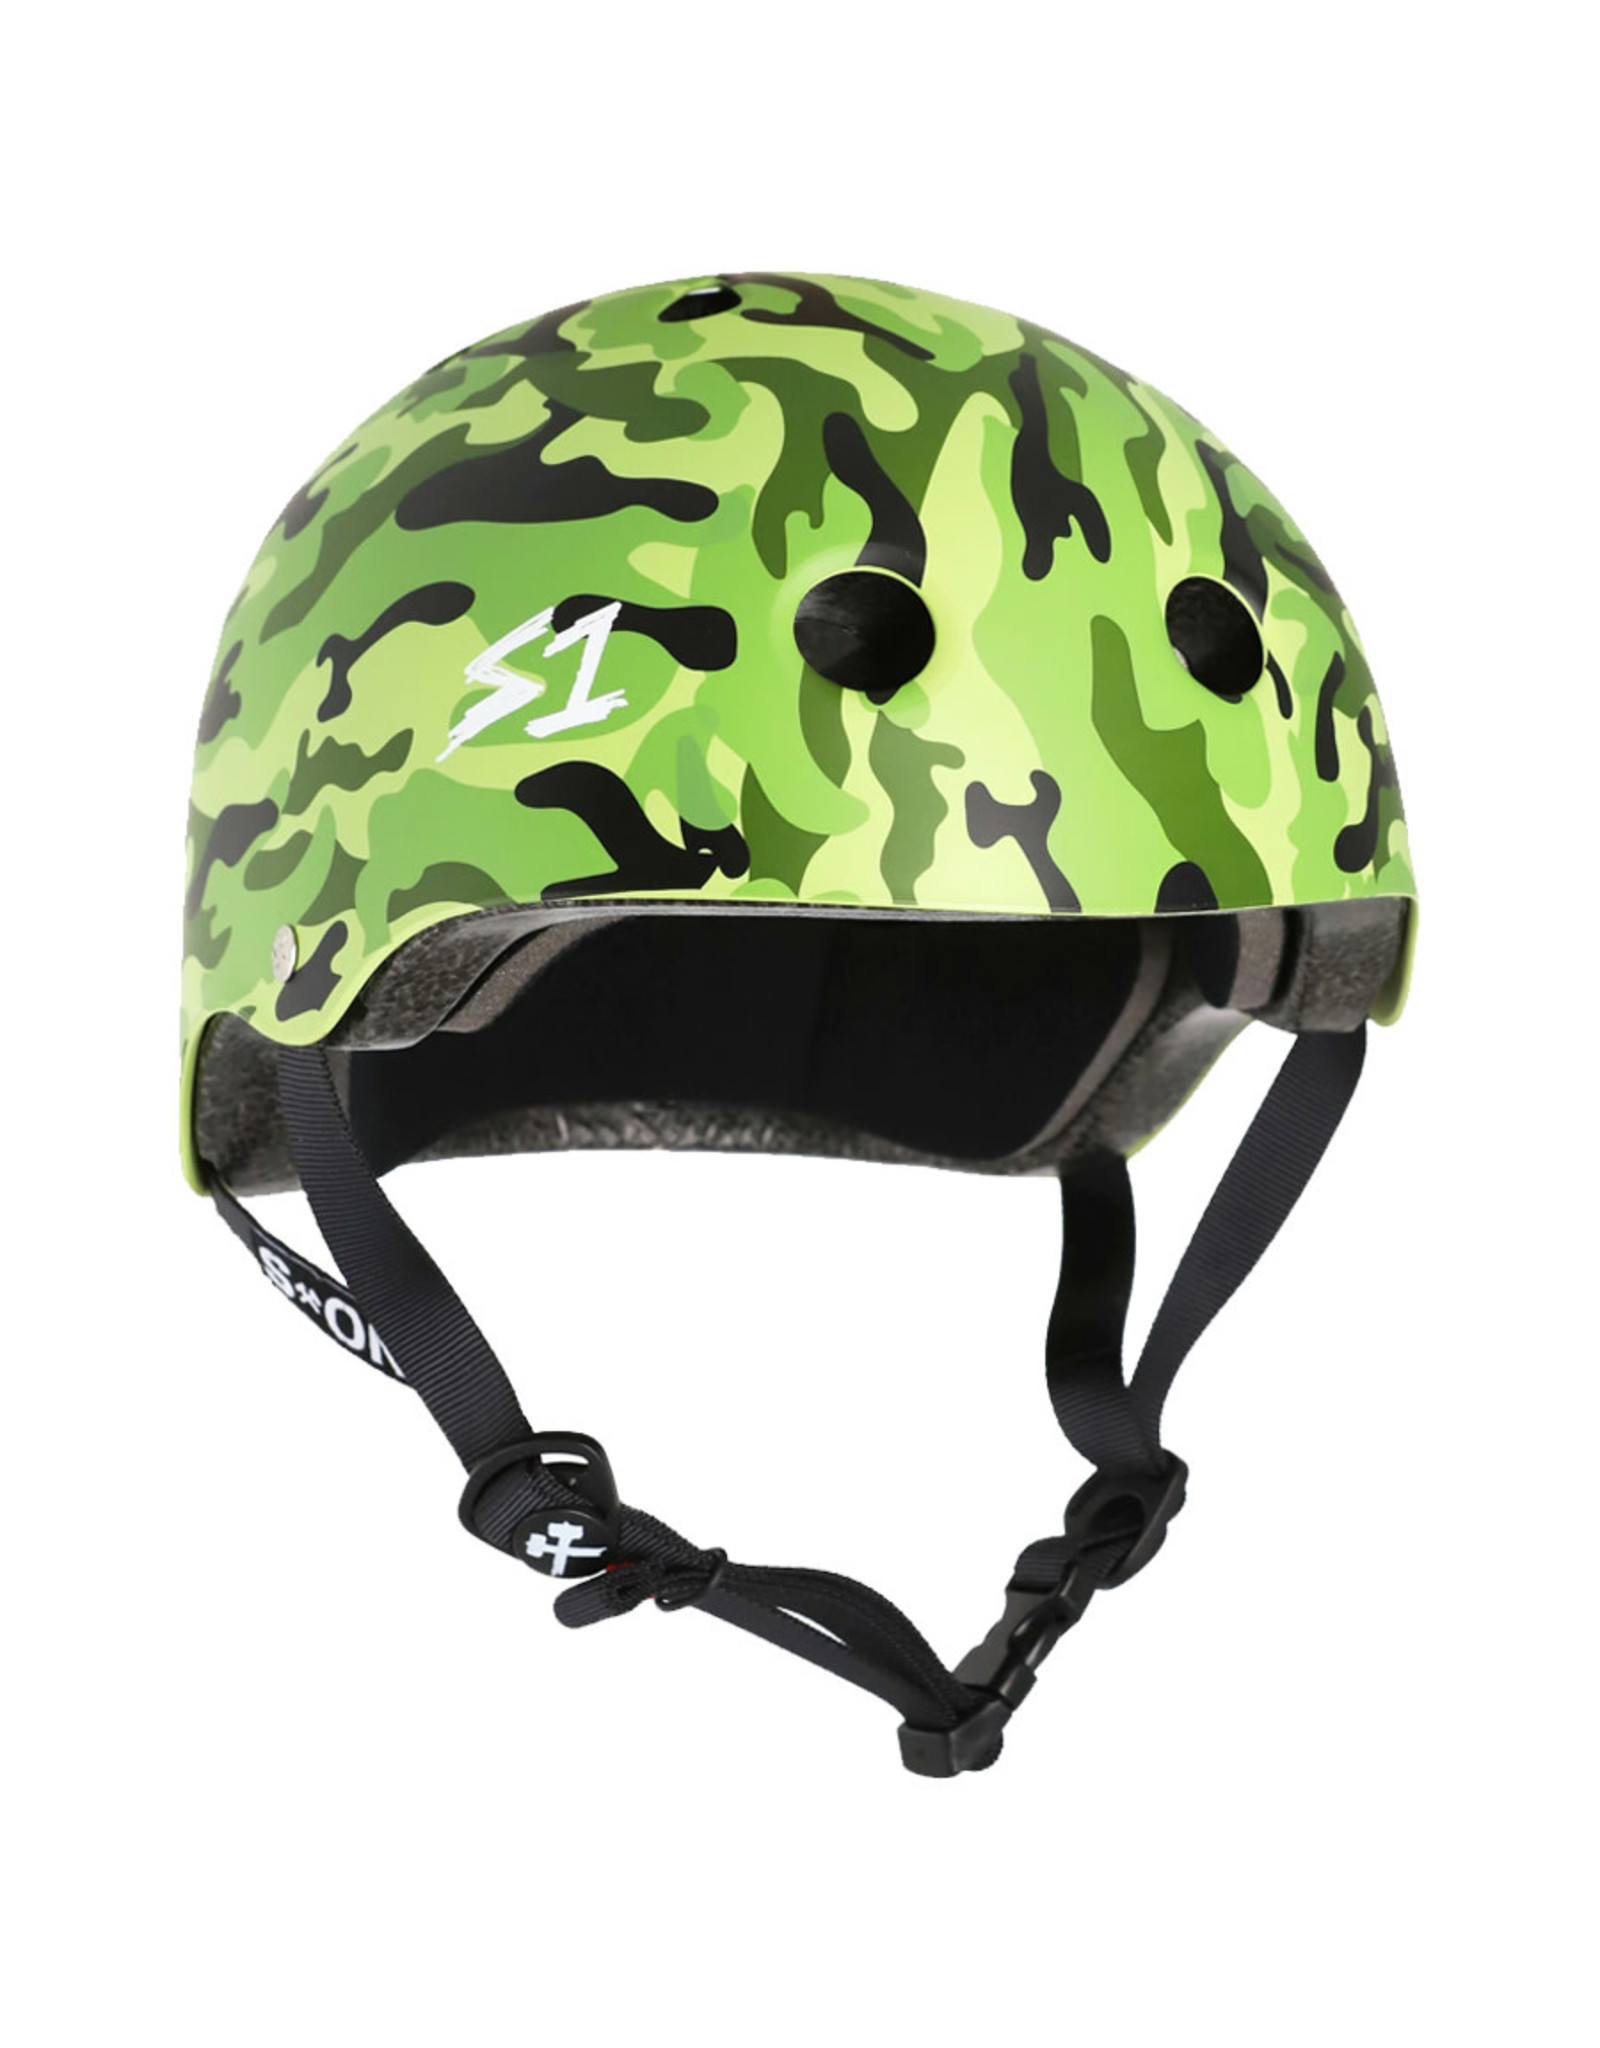 S-One S-One Helmet The Adult Lifer (Matte Green Camo/Black Straps)